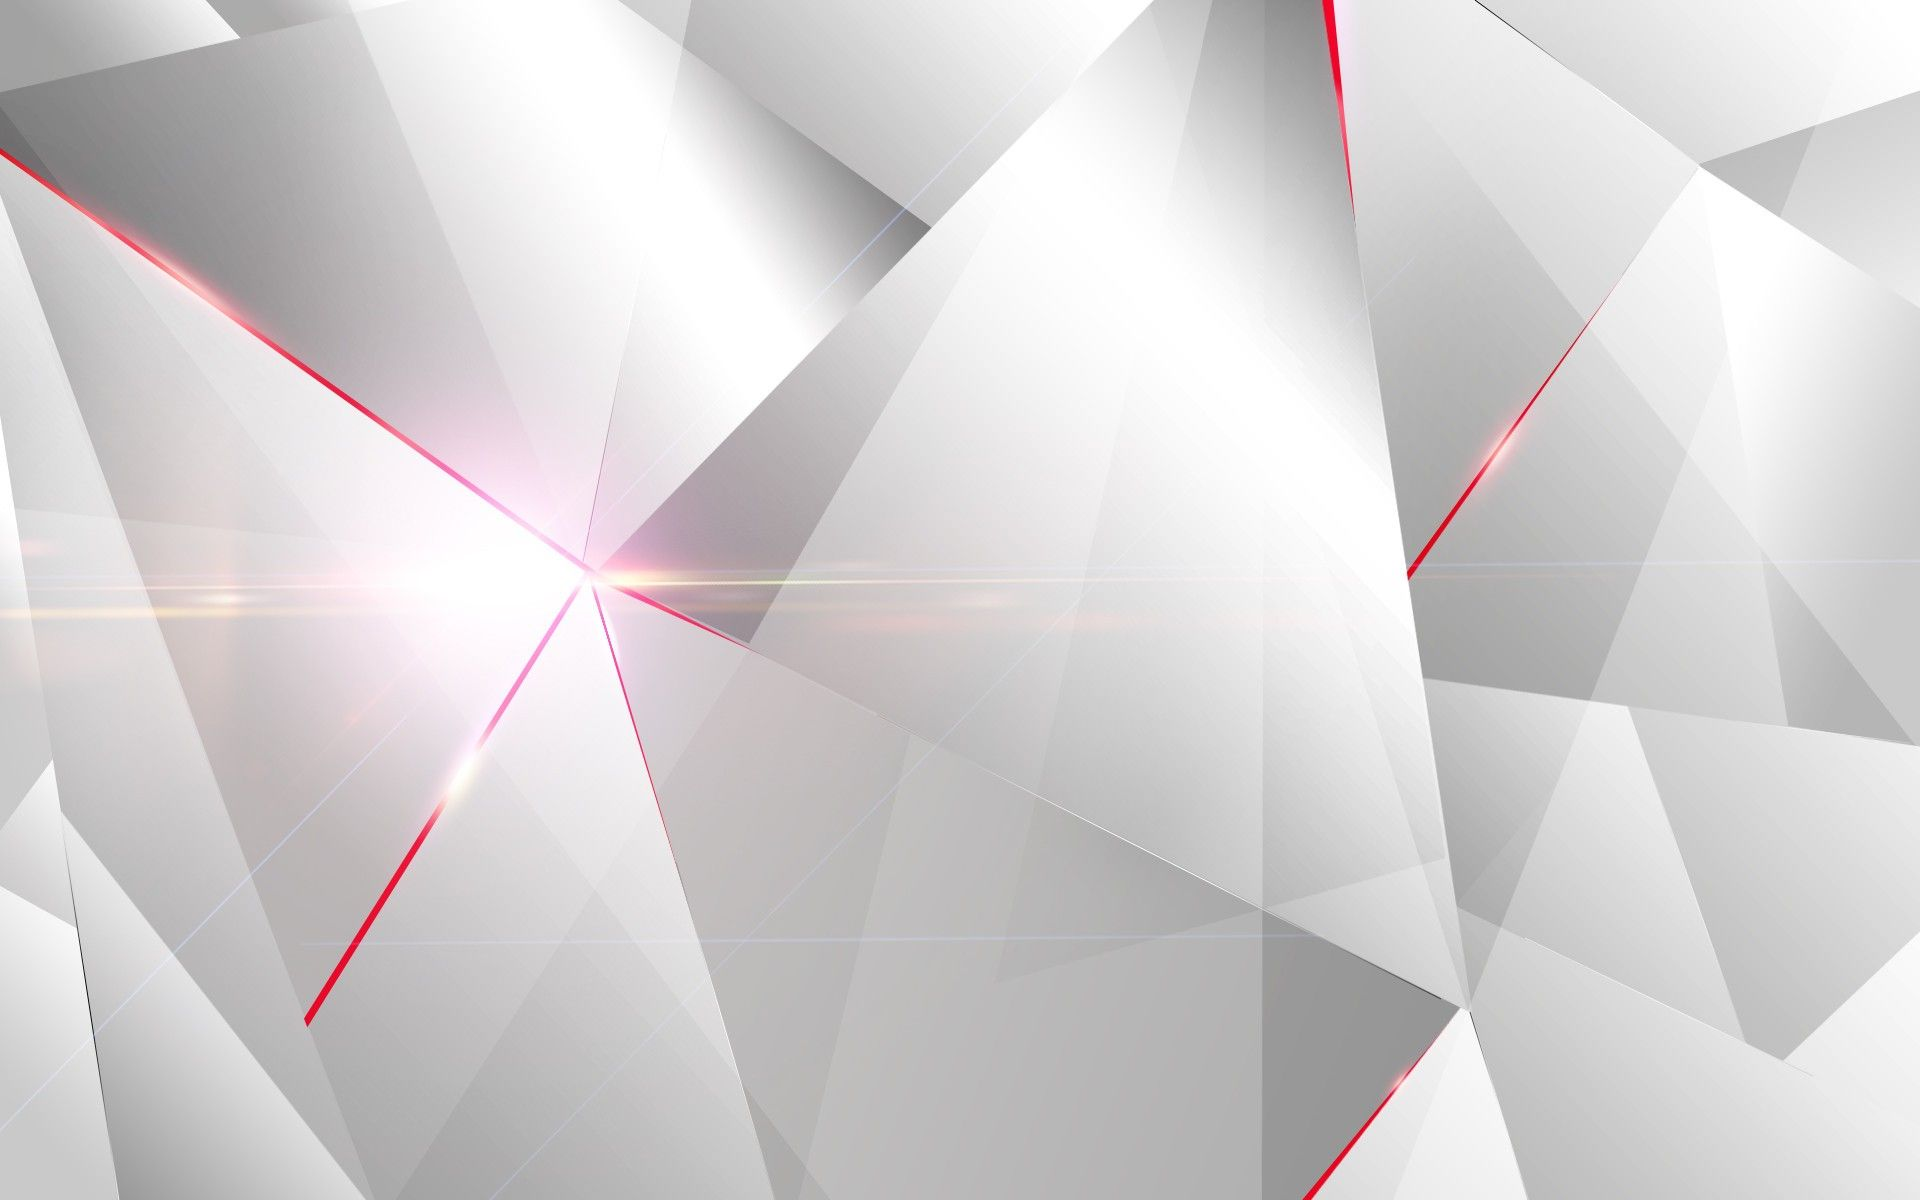 Black And White Geometric Wallpaper White And Red Shards 1920x1200 Wallpaper Teahub Io